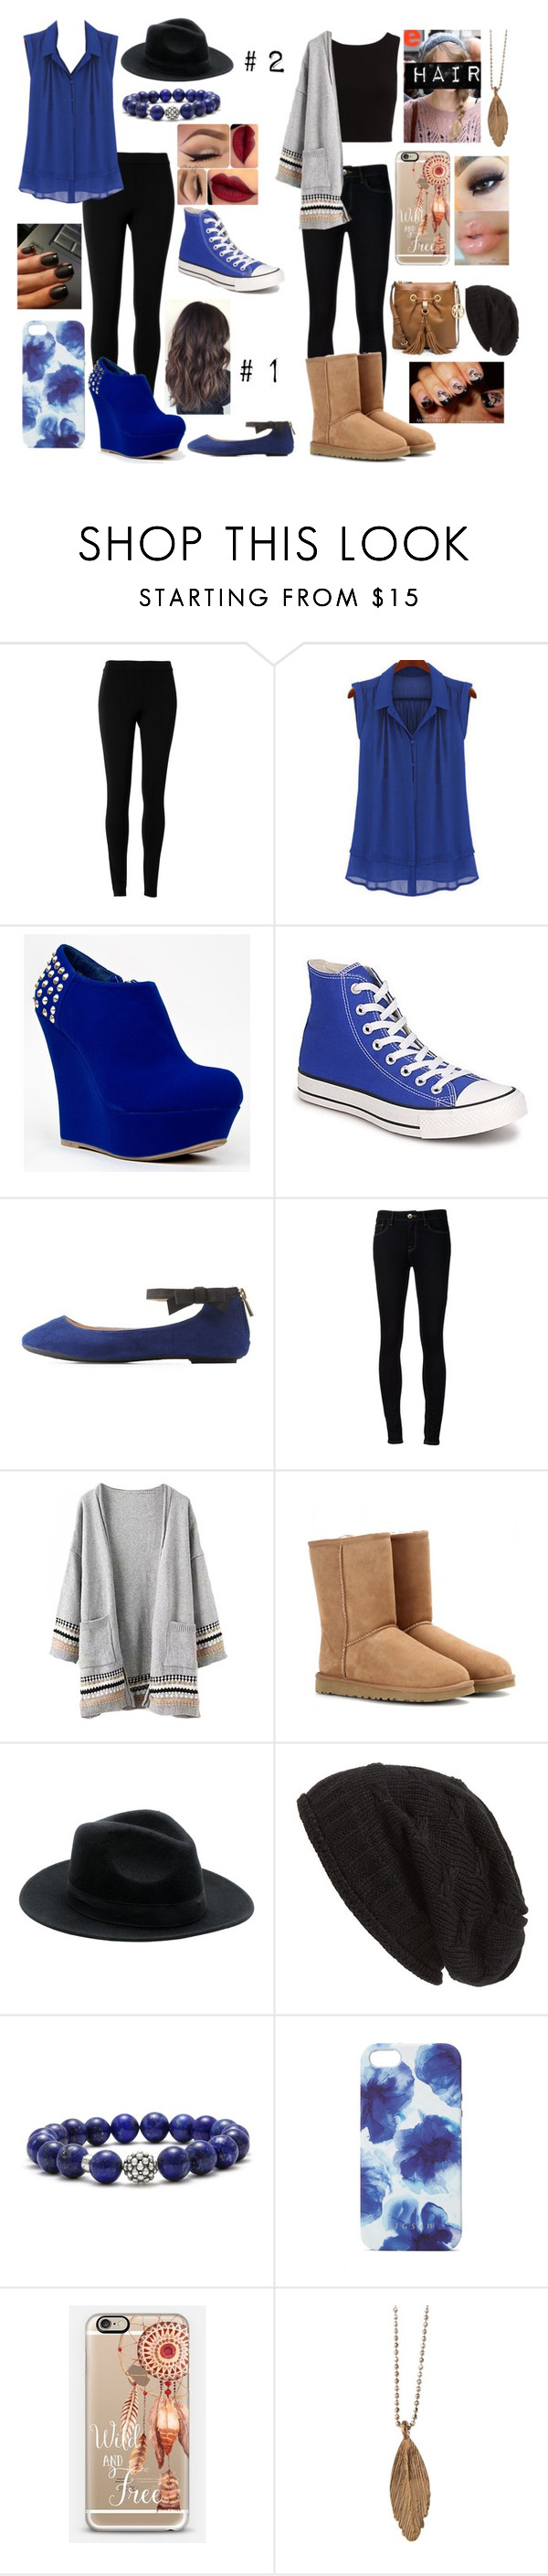 """""""Work Looks (Requested)"""" by xxcrazychicxx ❤ liked on Polyvore featuring Max Studio, Bamboo, Converse, Charlotte Russe, Ström, UGG Australia, David & Young, Lagos, Jigsaw and Casetify"""